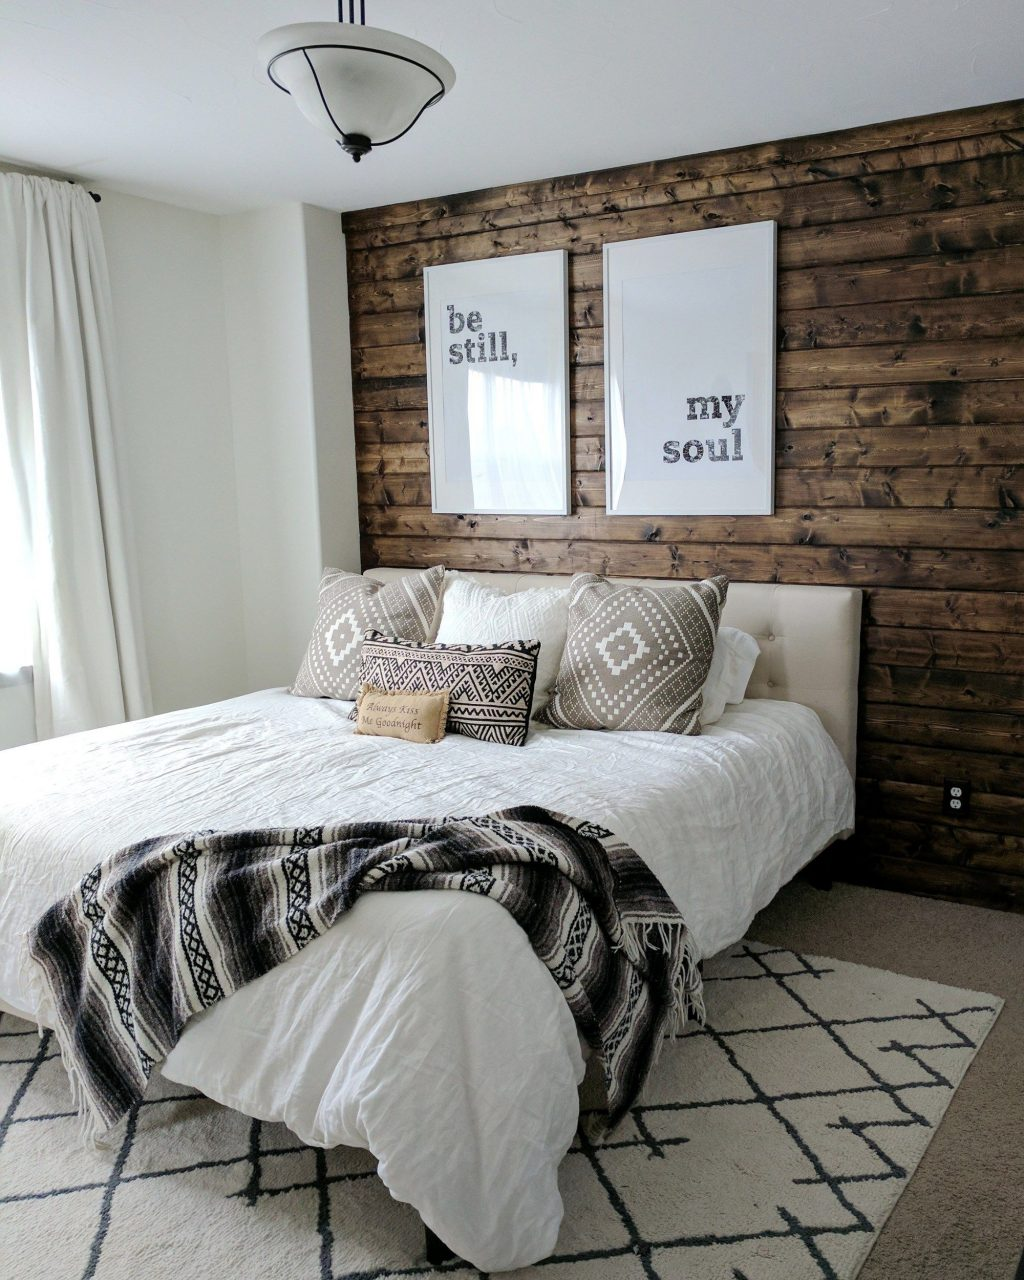 How To Build A Wood Accent Wall Diy Home Decor Ideas Bedroom